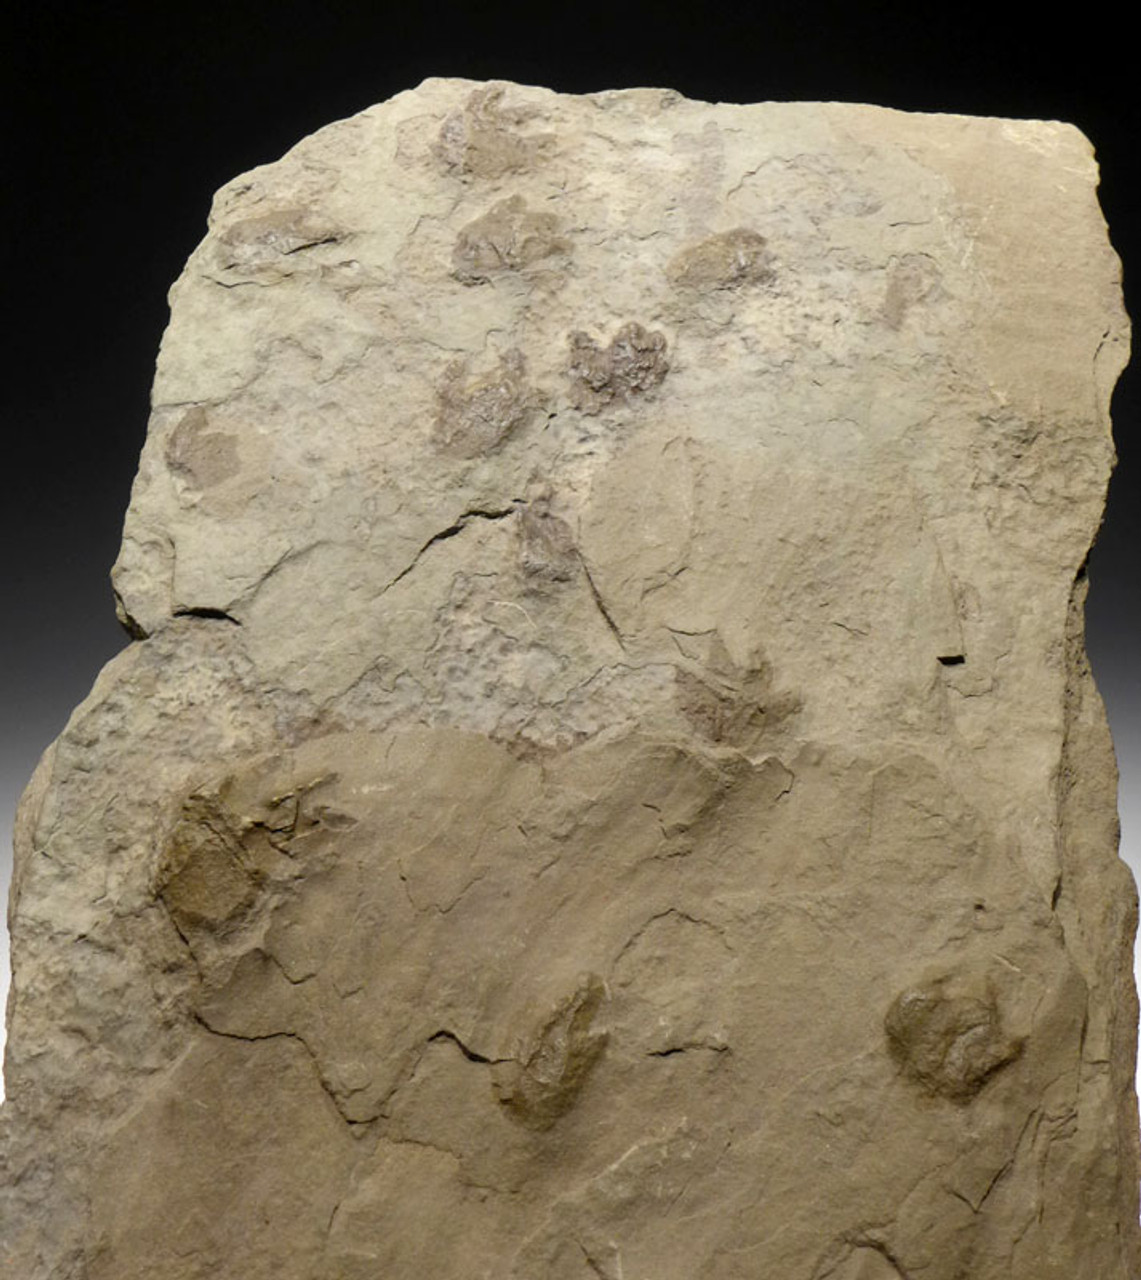 AMPH049 - PALEOZOIC TETRAPOD FOOTPRINTS ICHNOFOSSIL FROM THE PERMIAN DEPOSITS OF WESTERN GERMANY